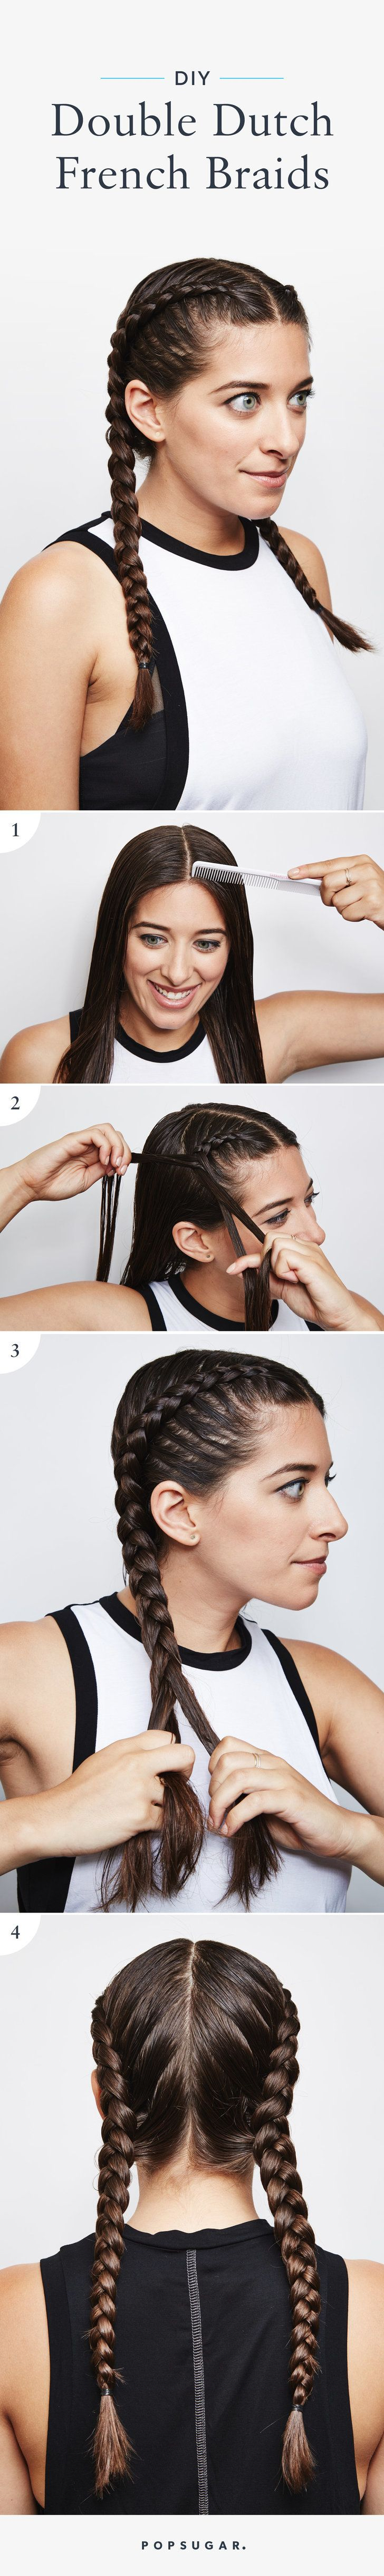 best cabelos images on pinterest hairstyle ideas hair makeup